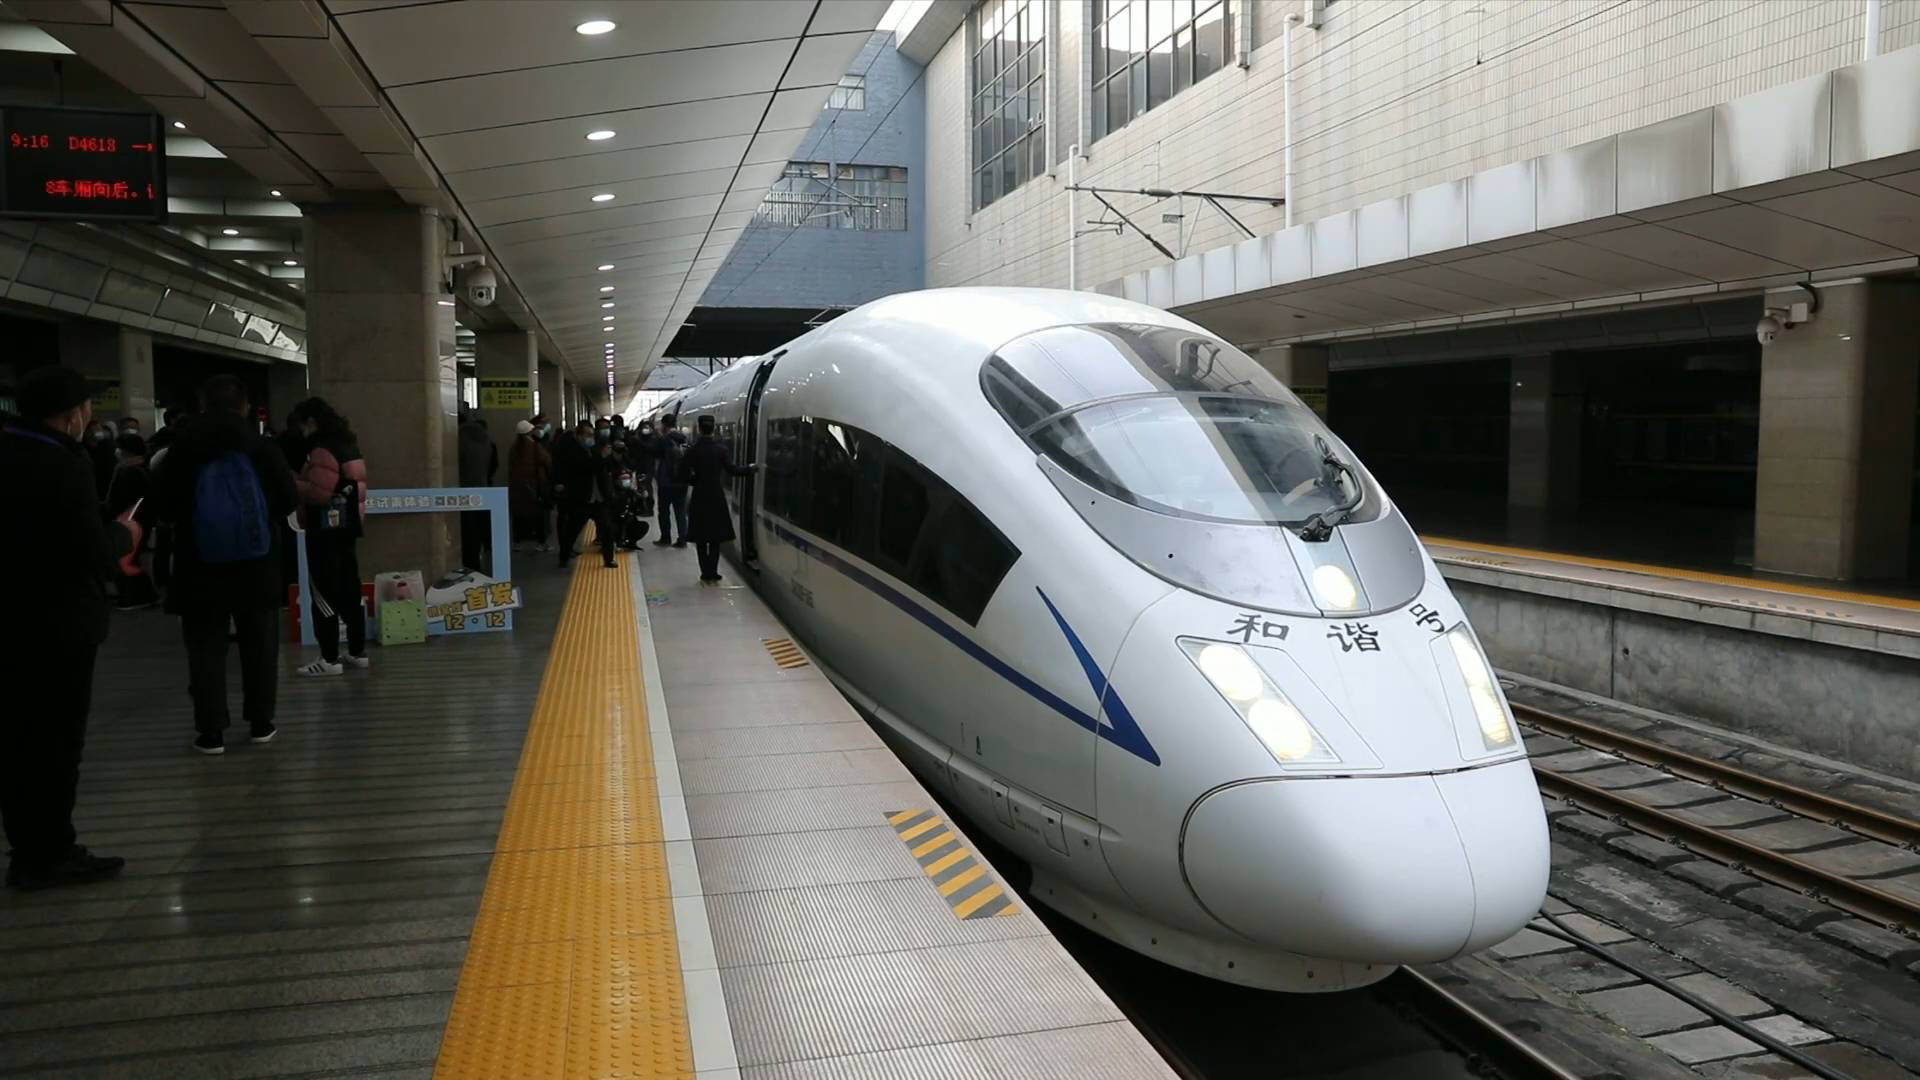 New high-speed railway linking capital cities in north China starts operation